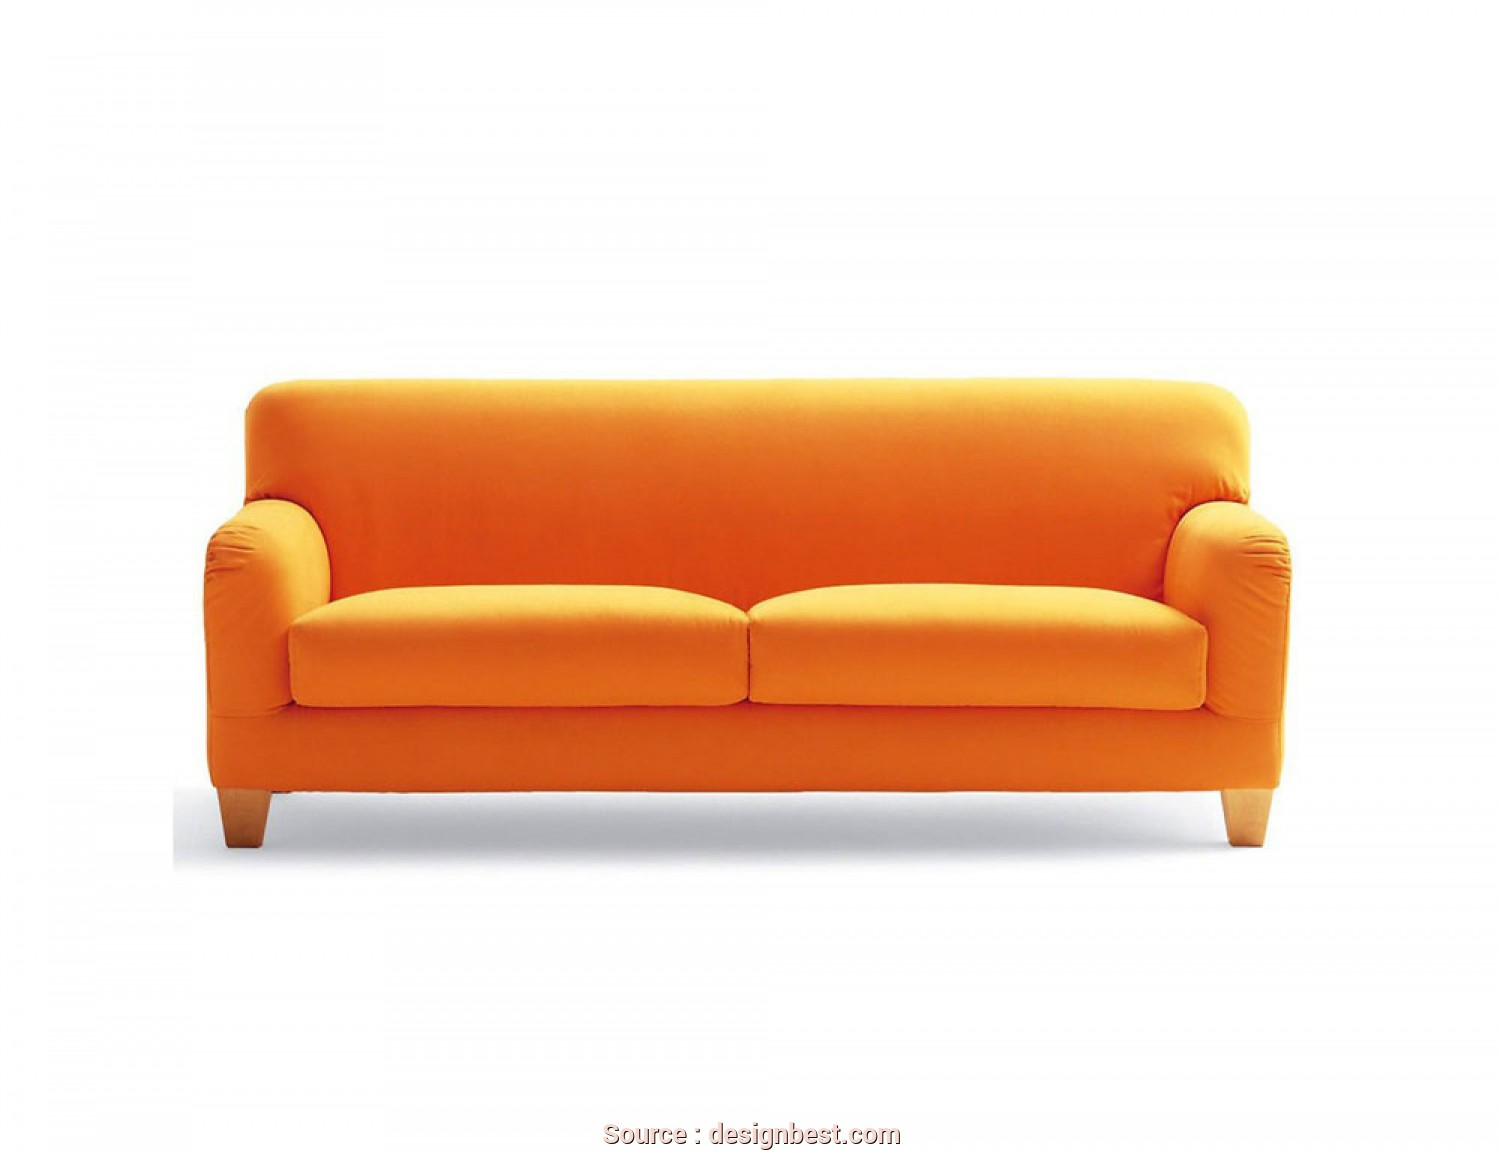 Campeggi Italia Divani, Deale Sofa-Beds: Sofa-Bed River By Campeggi